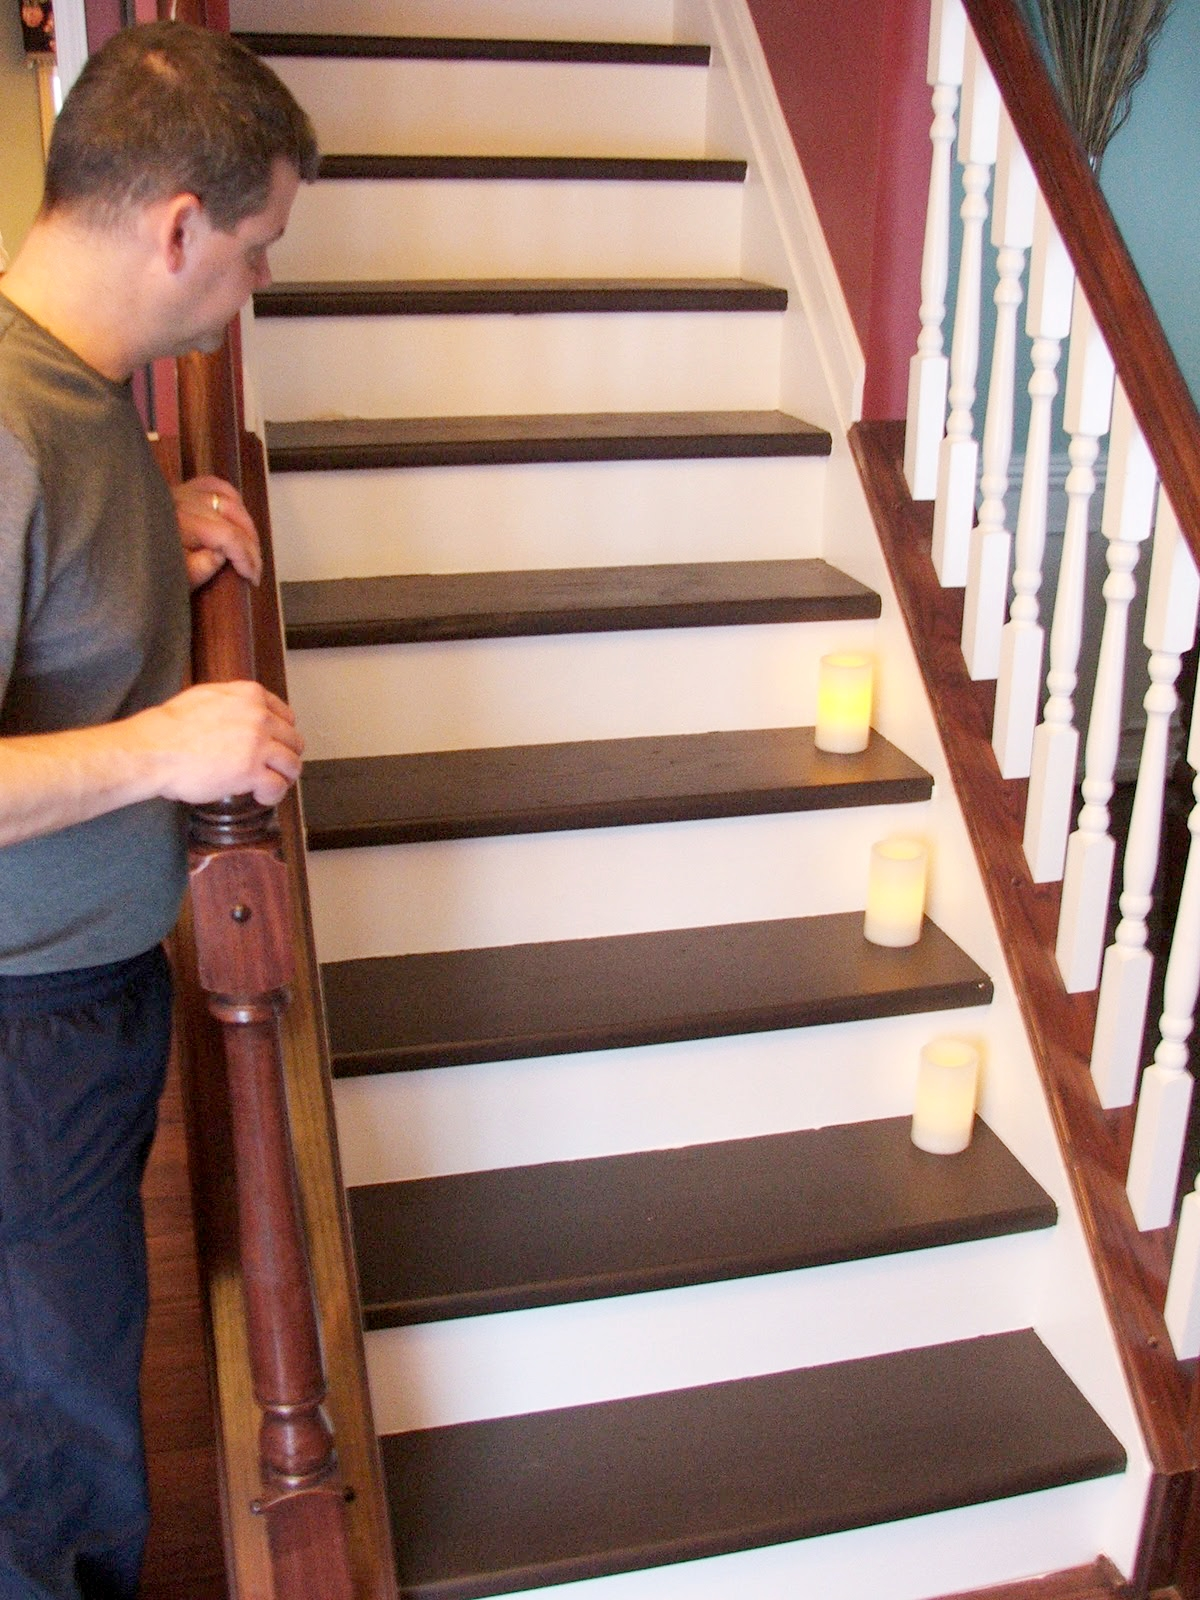 Remodelaholic Under 100 Carpeted Stair To Wooden Tread Makeover Diy Regarding Carpet For Wood Stairs (View 7 of 15)